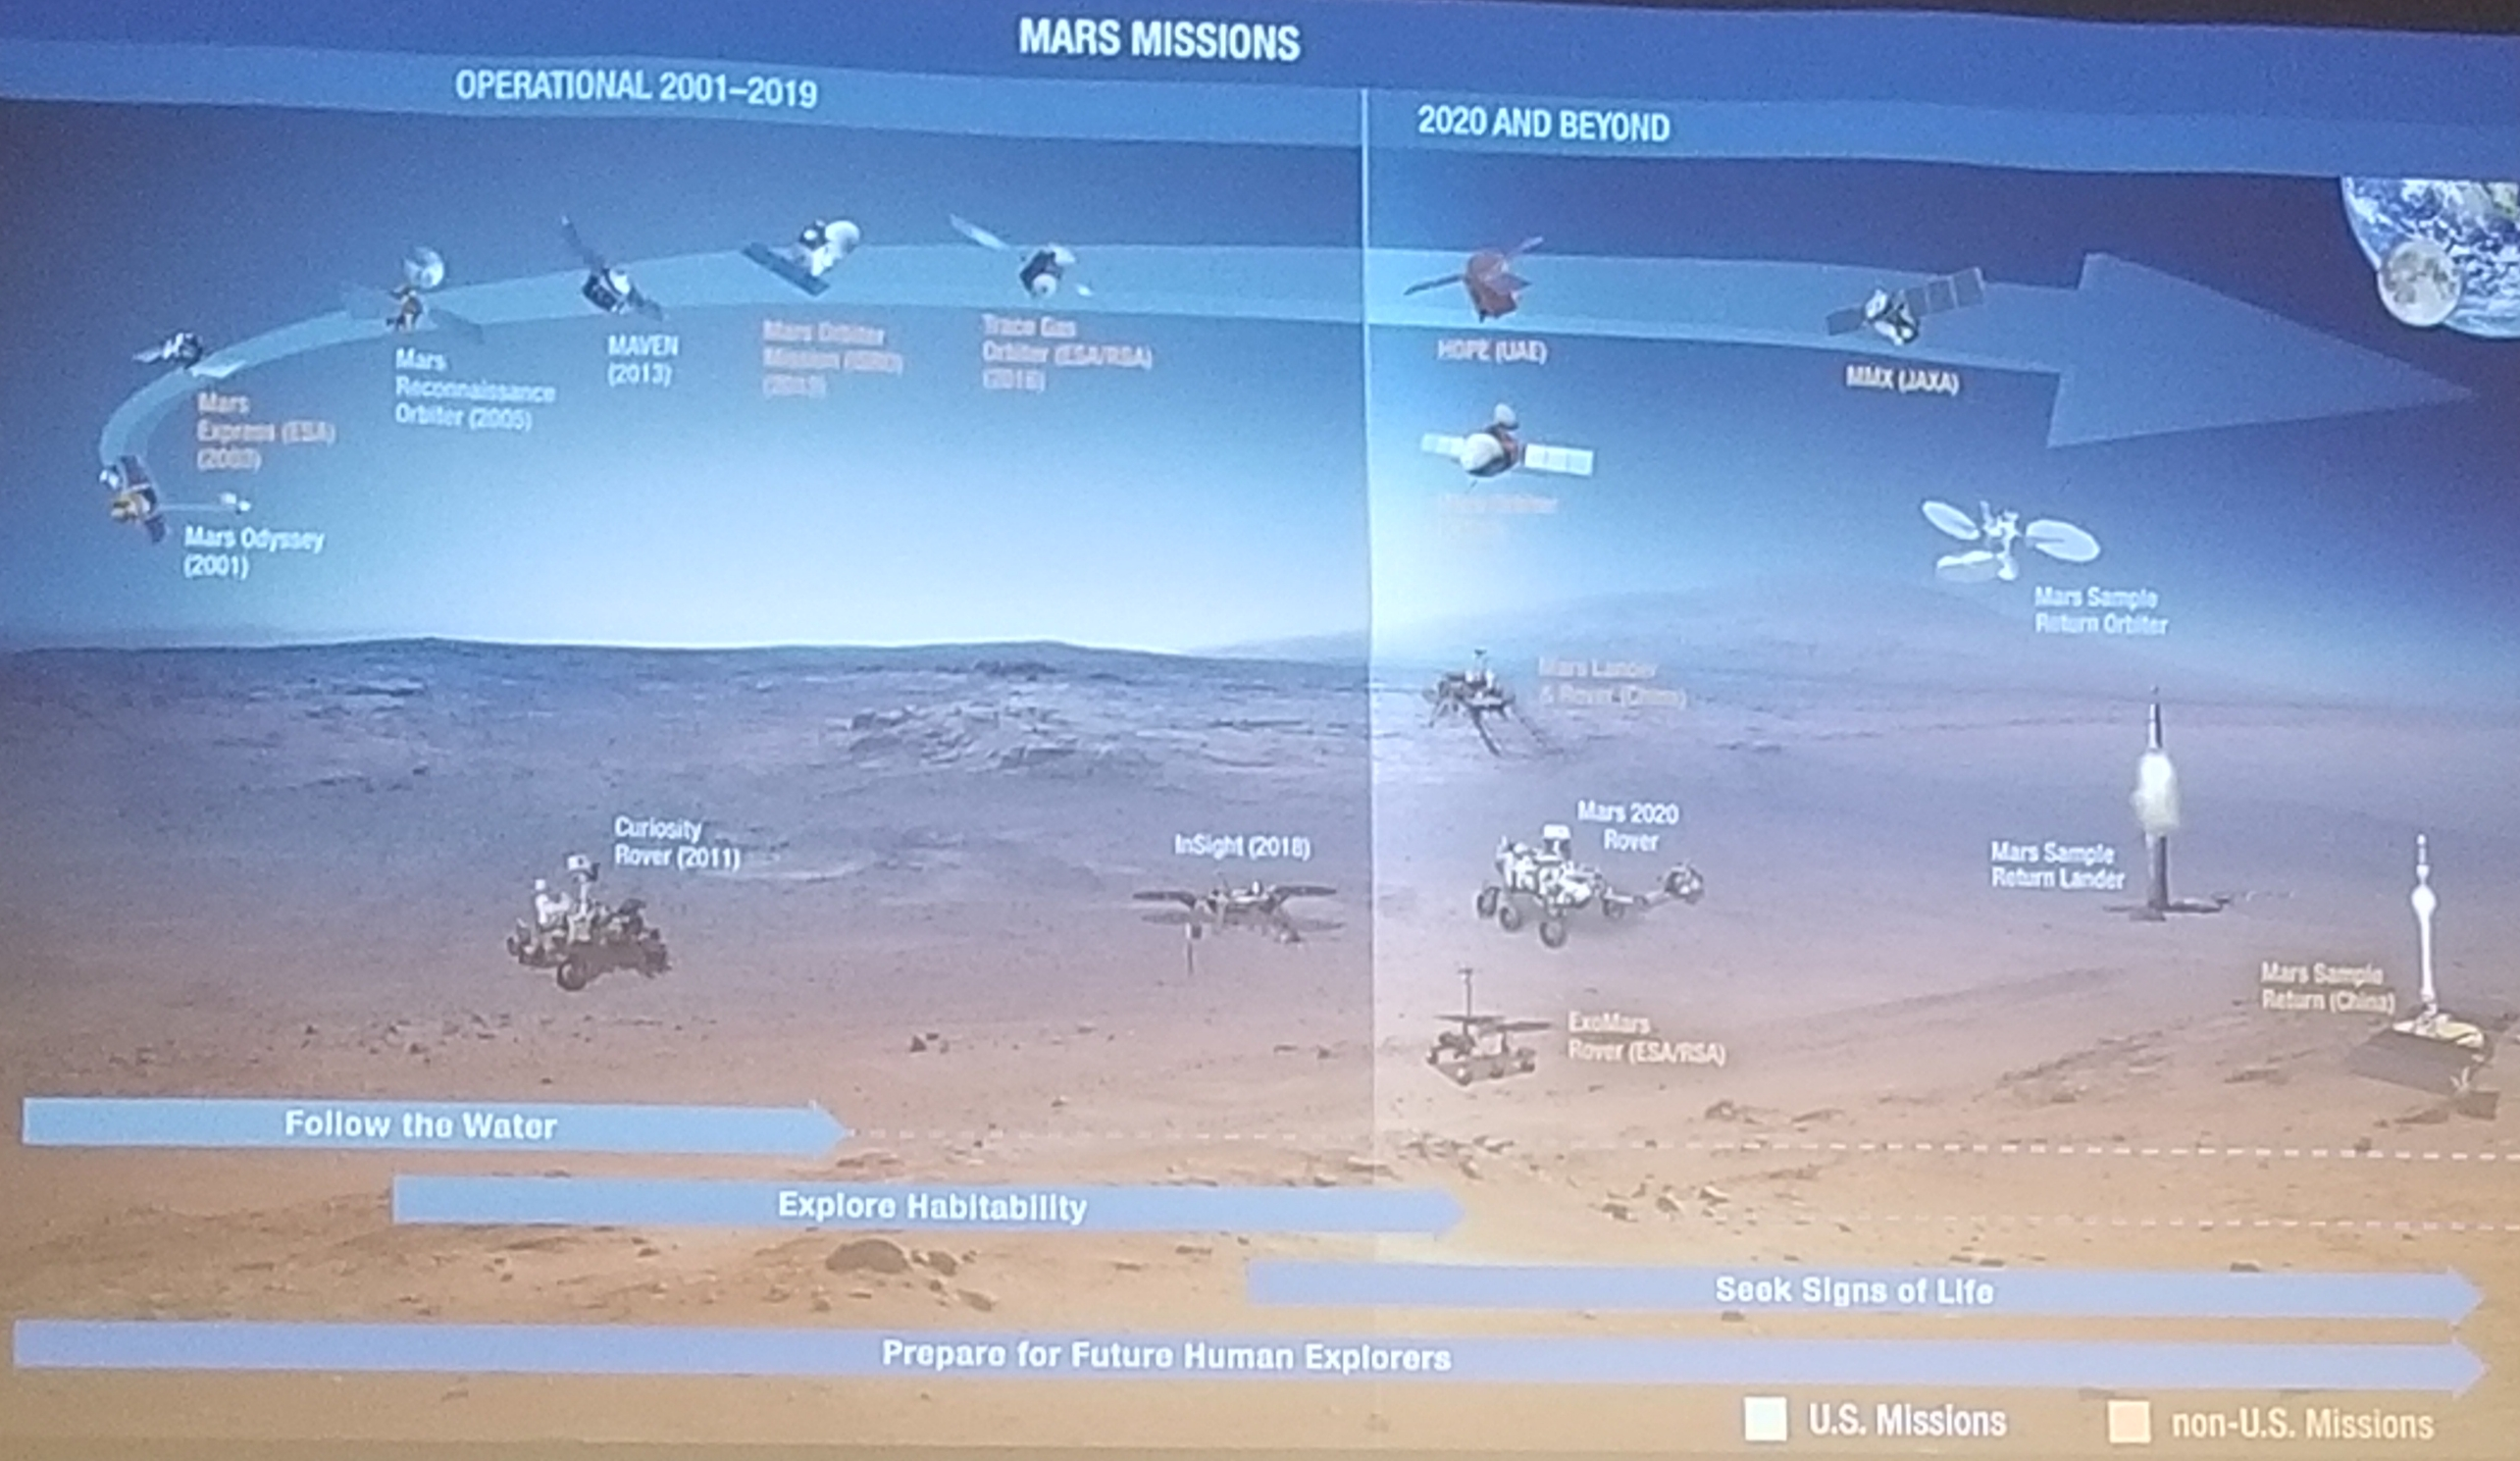 Photo from Humans to Mars Summit (Day 1)